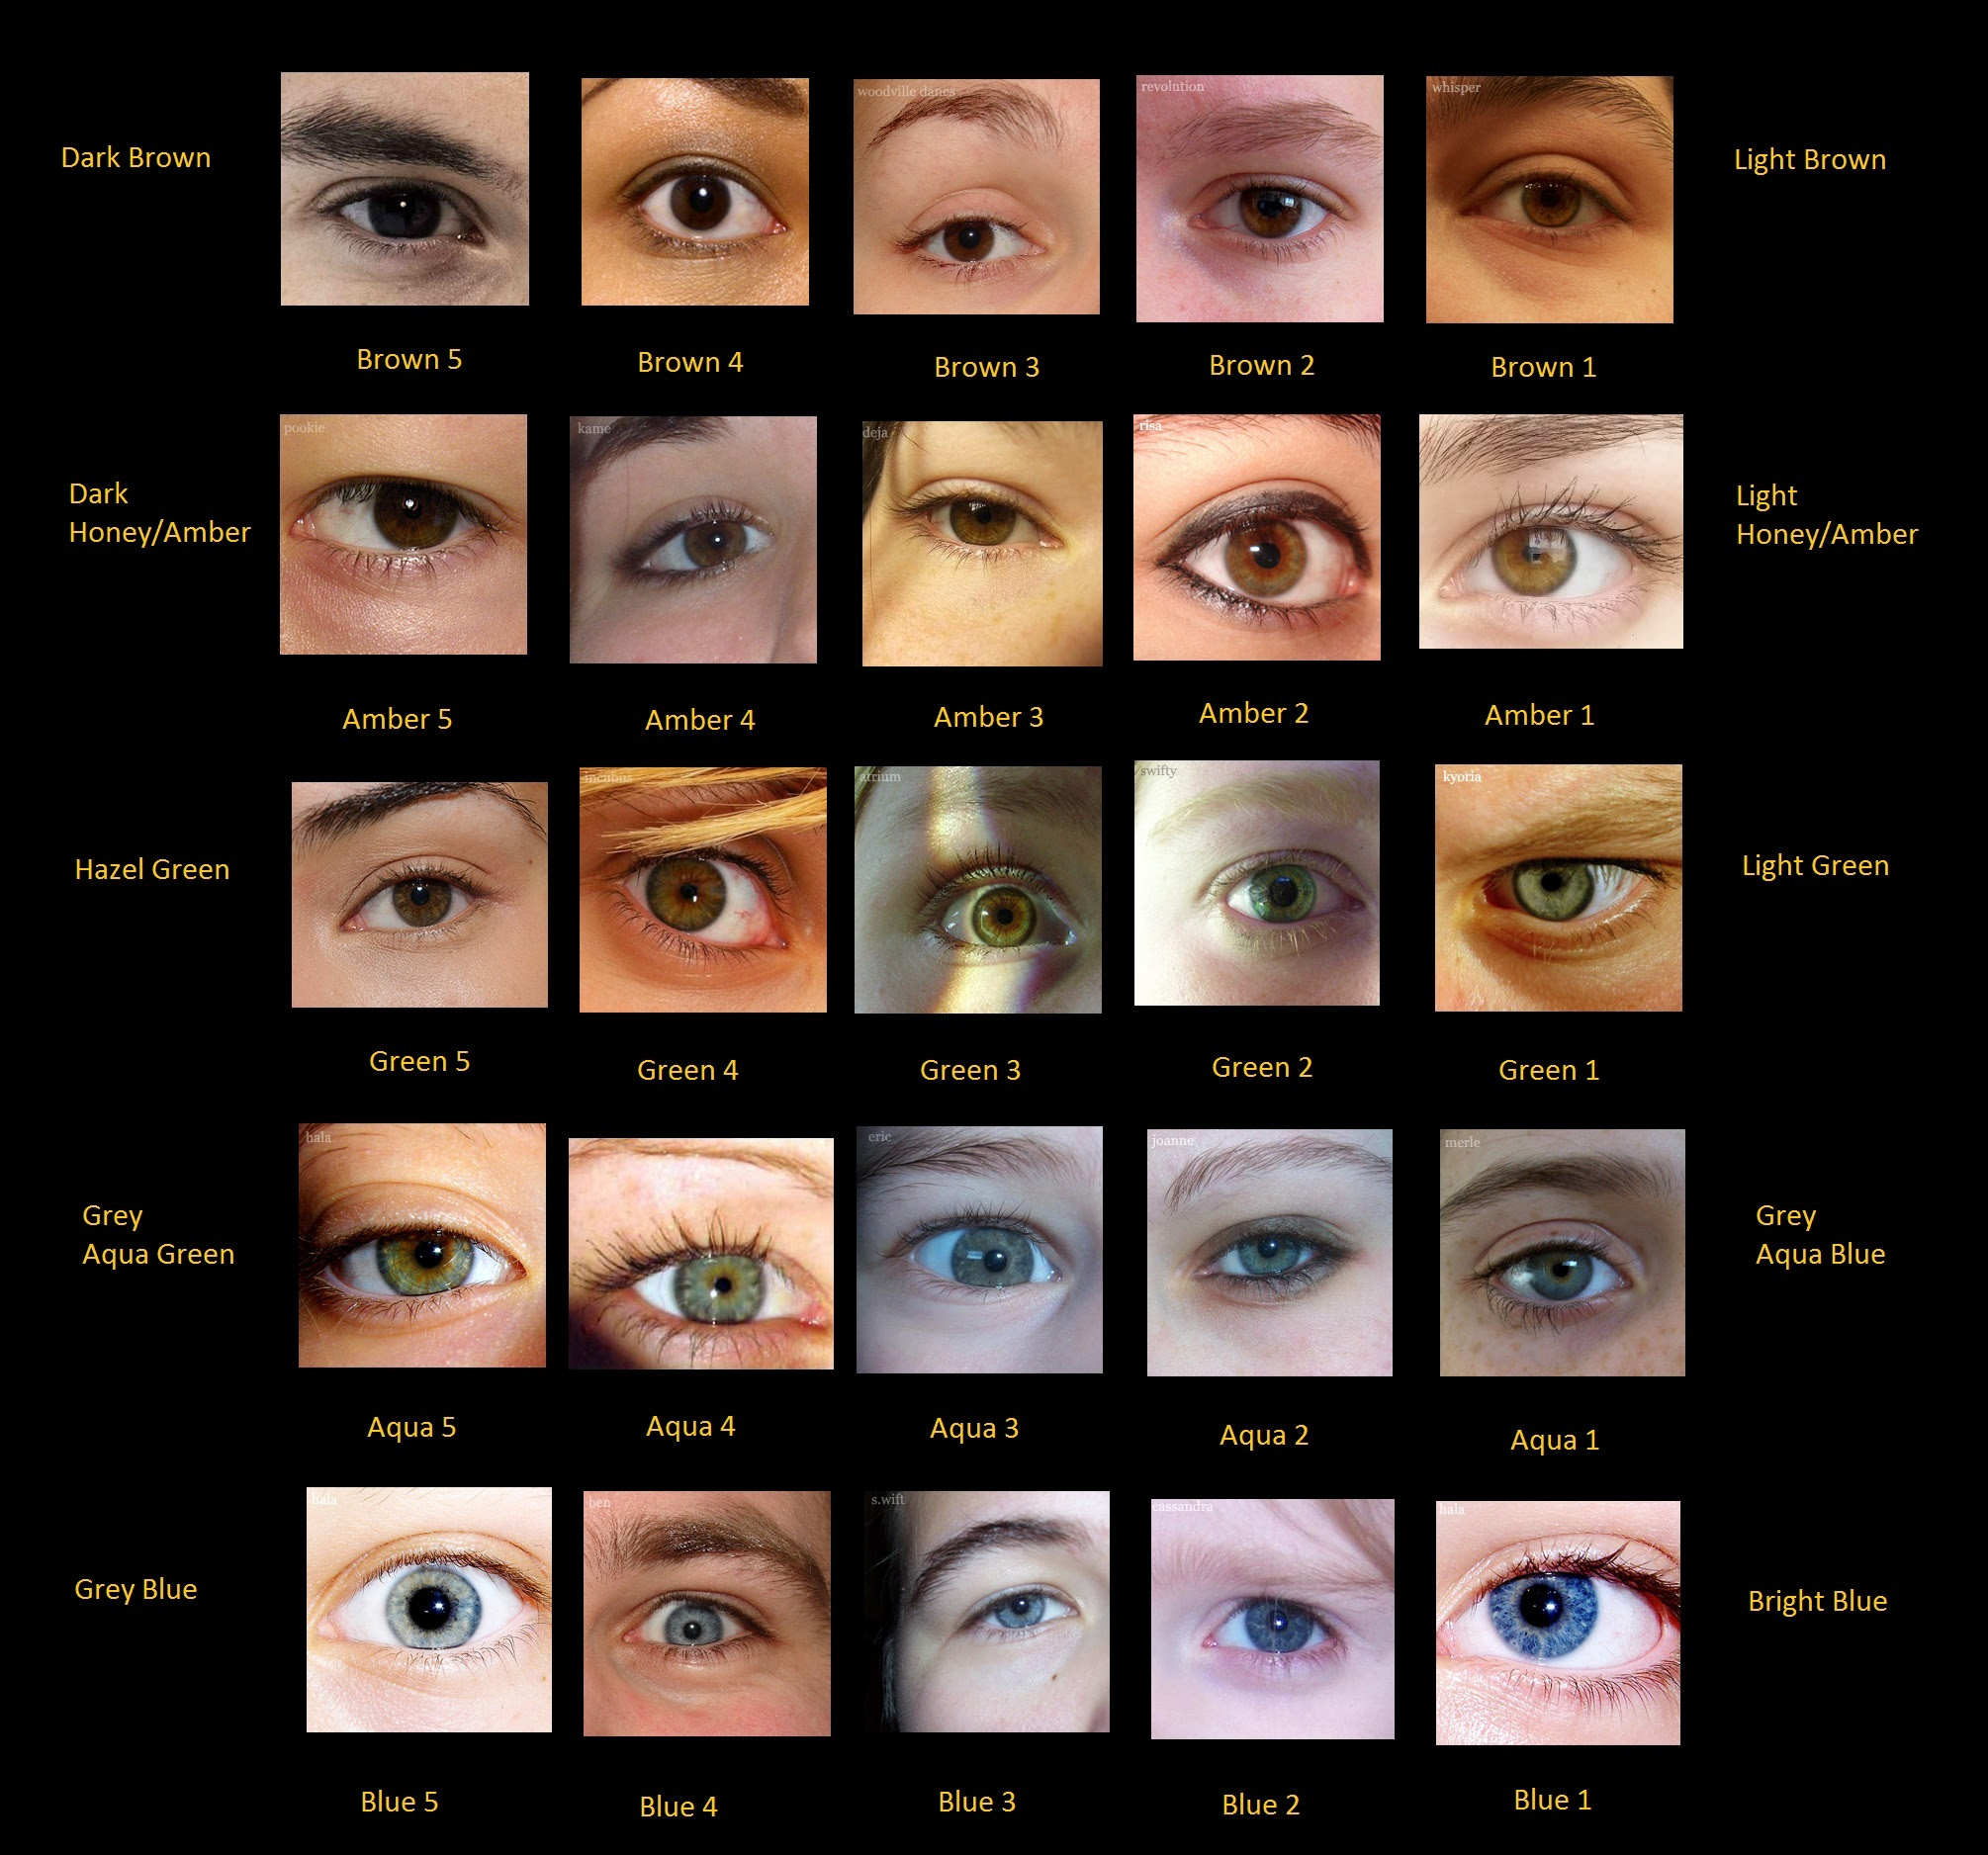 What Do You Consider To Be Light For Eye Color Archive The